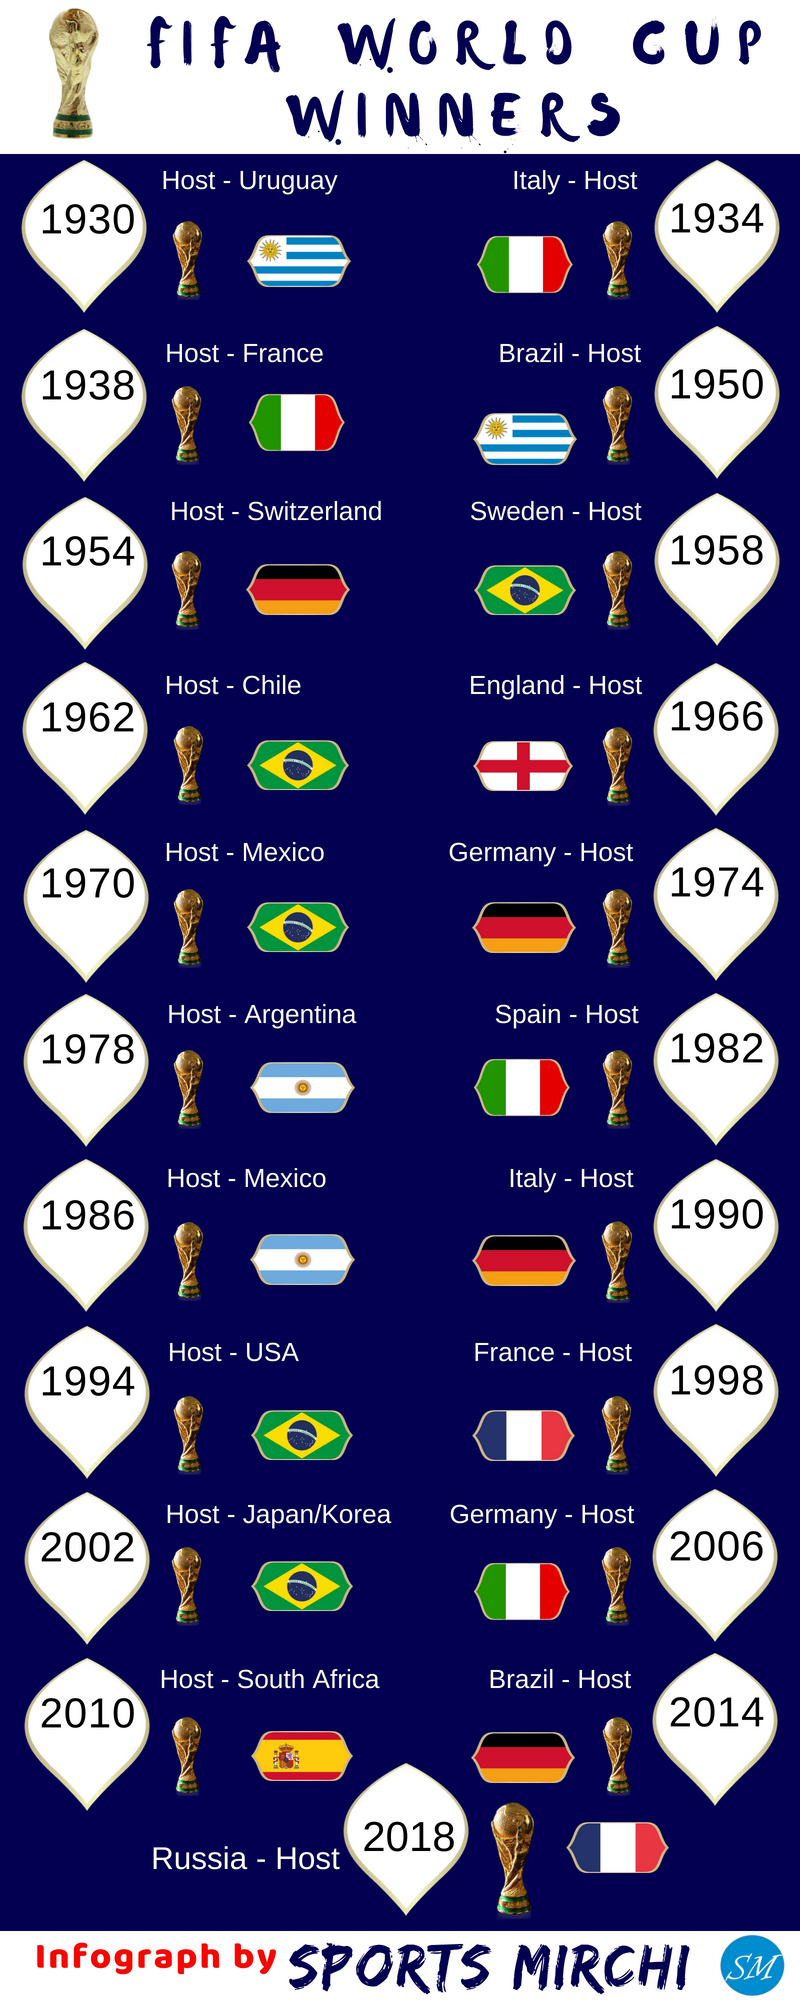 FIFA World Cup Winners from 1930 to 2018 infograph